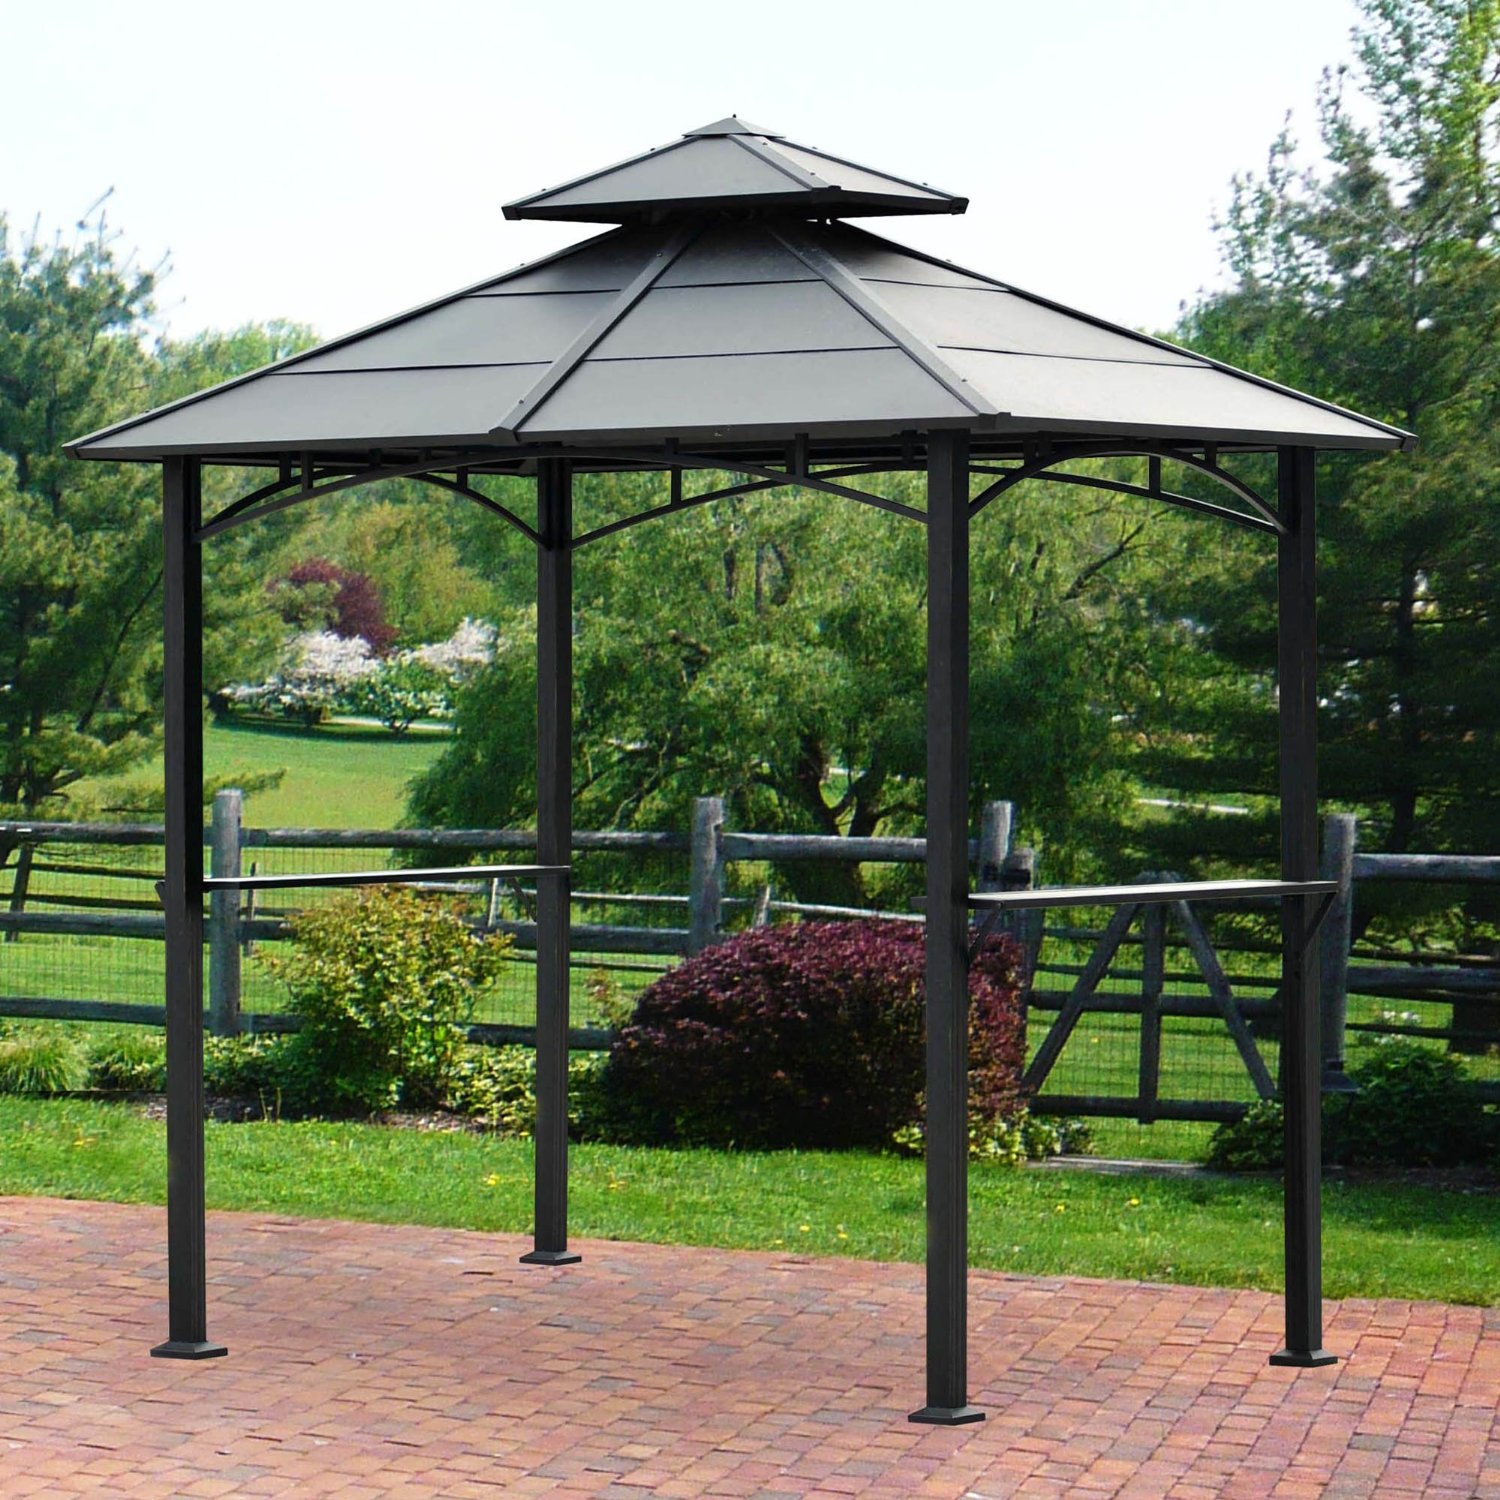 Full Picture Of Your New Cheap Gazebo